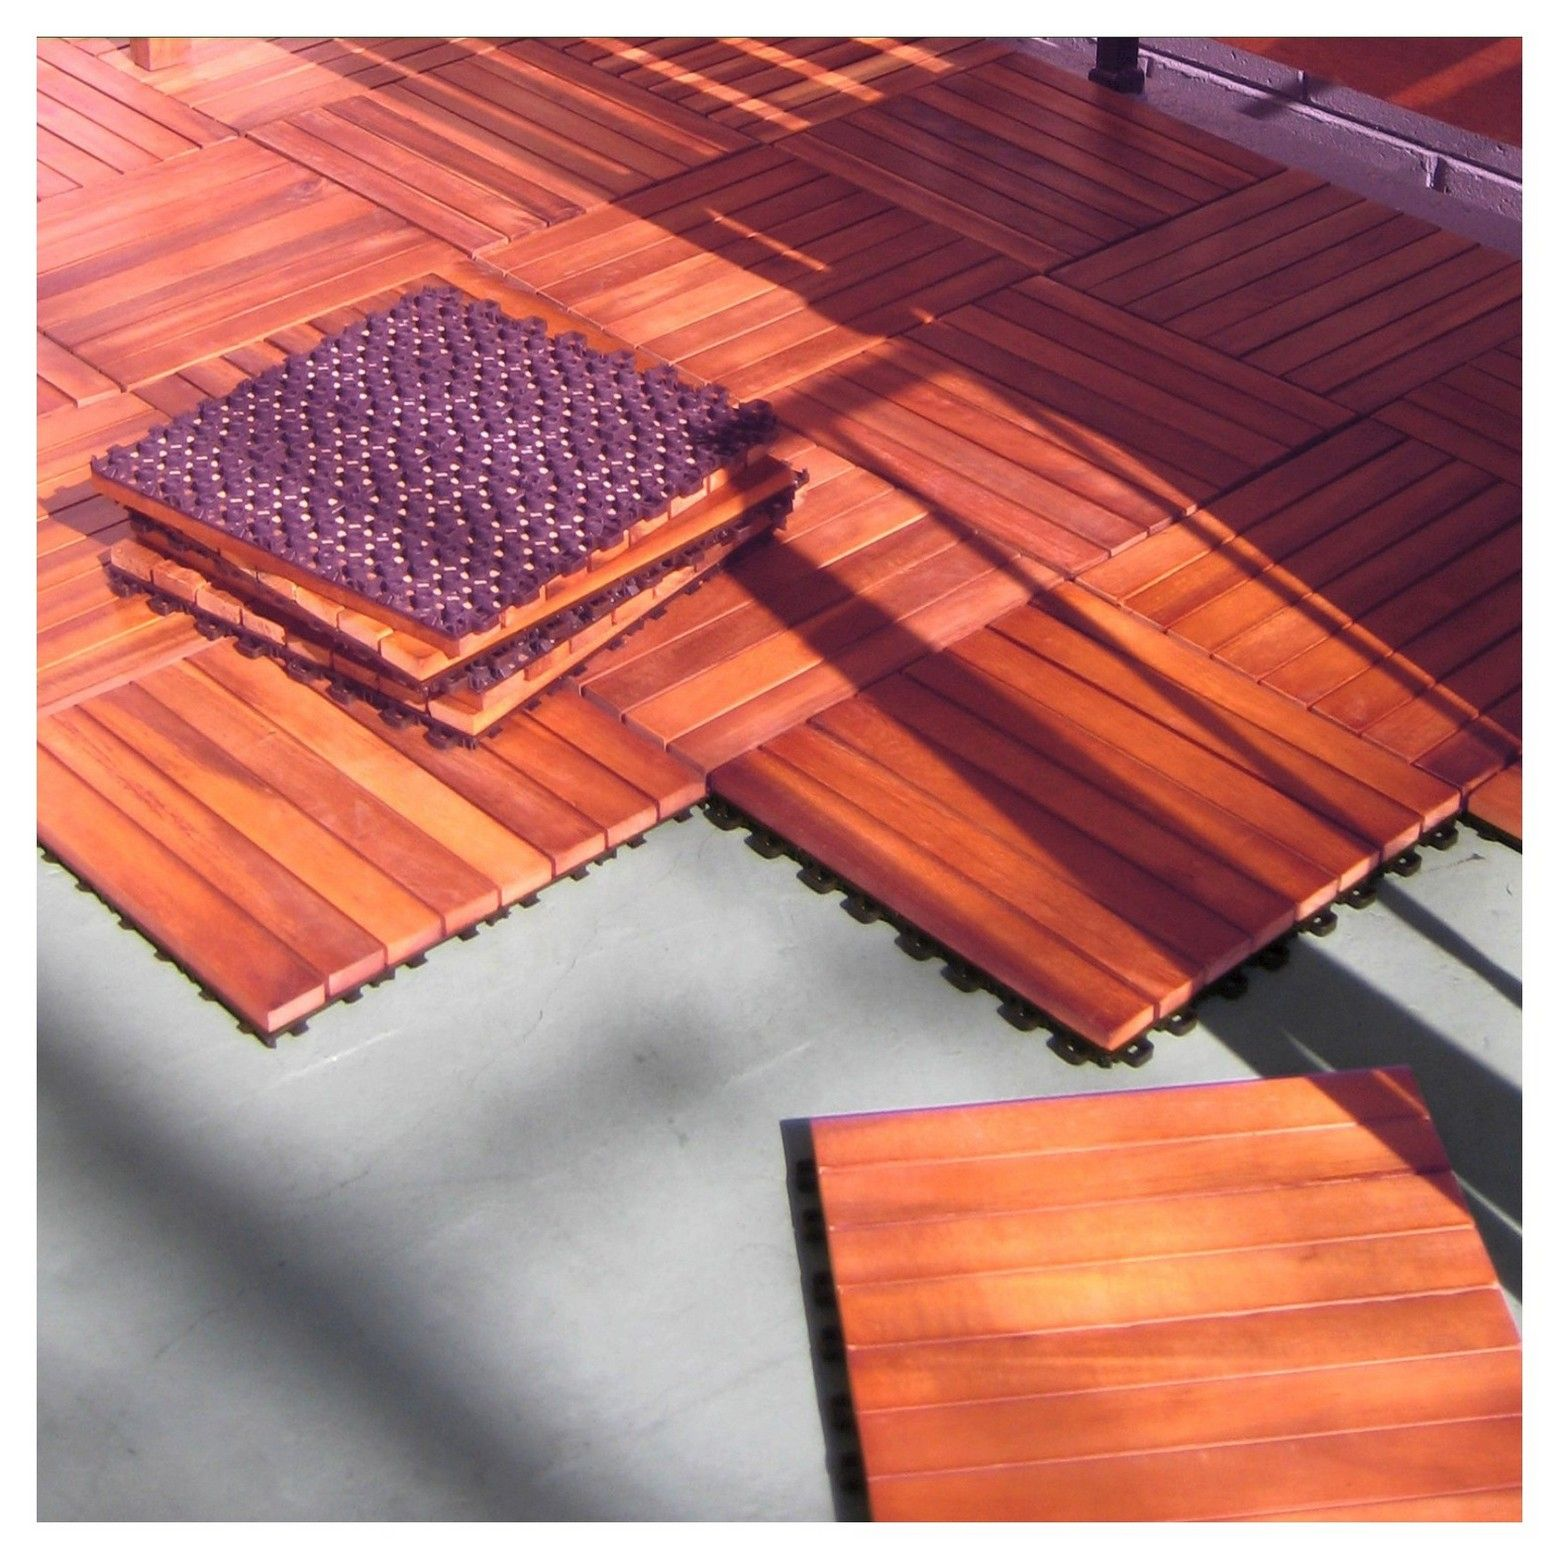 Vifah 8 Slat Eucalyptus Interlocking Deck Tile Brown Set Of 10 Deck Tile Wood Deck Tiles Interlocking Deck Tiles